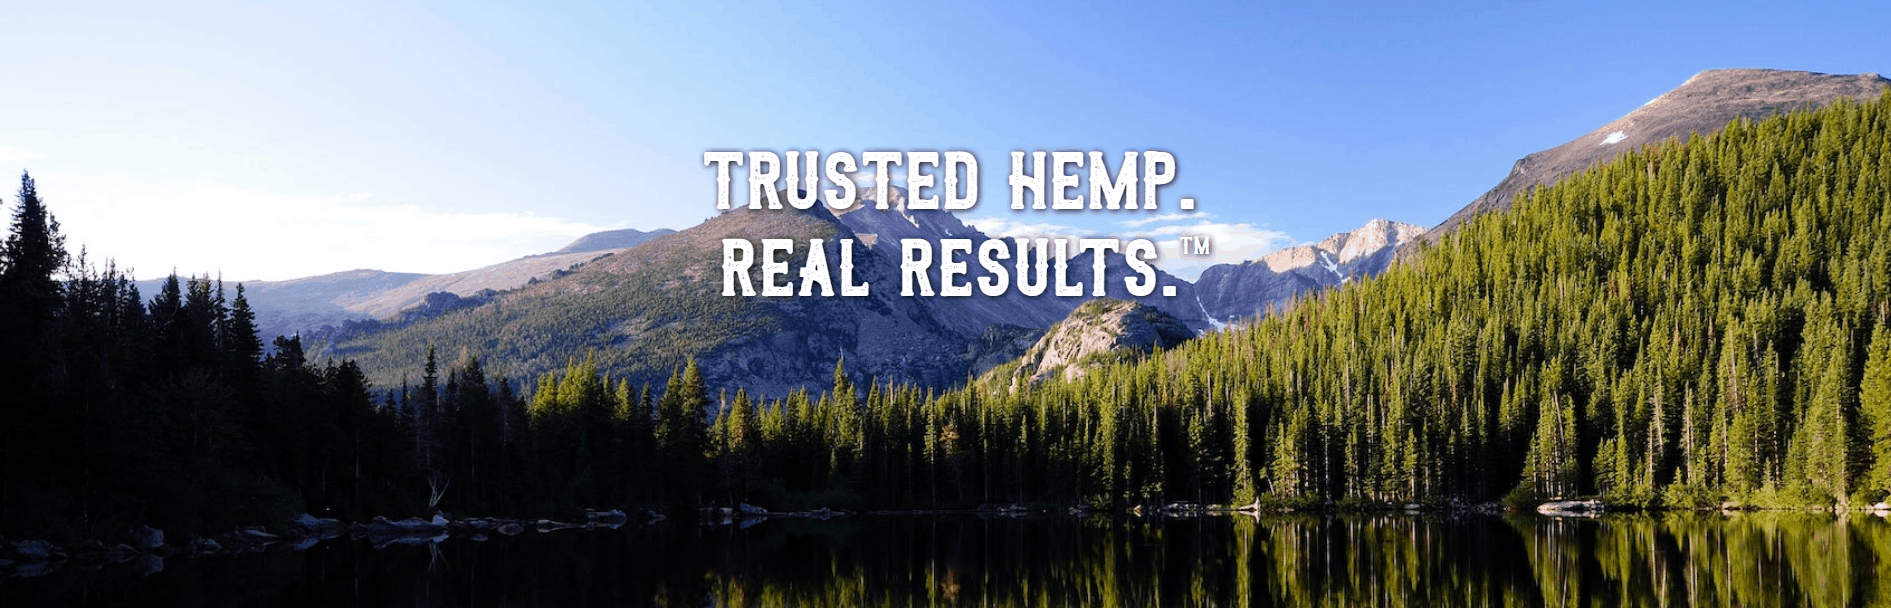 R+R Medicinal CBD Coupons Trusted hemp